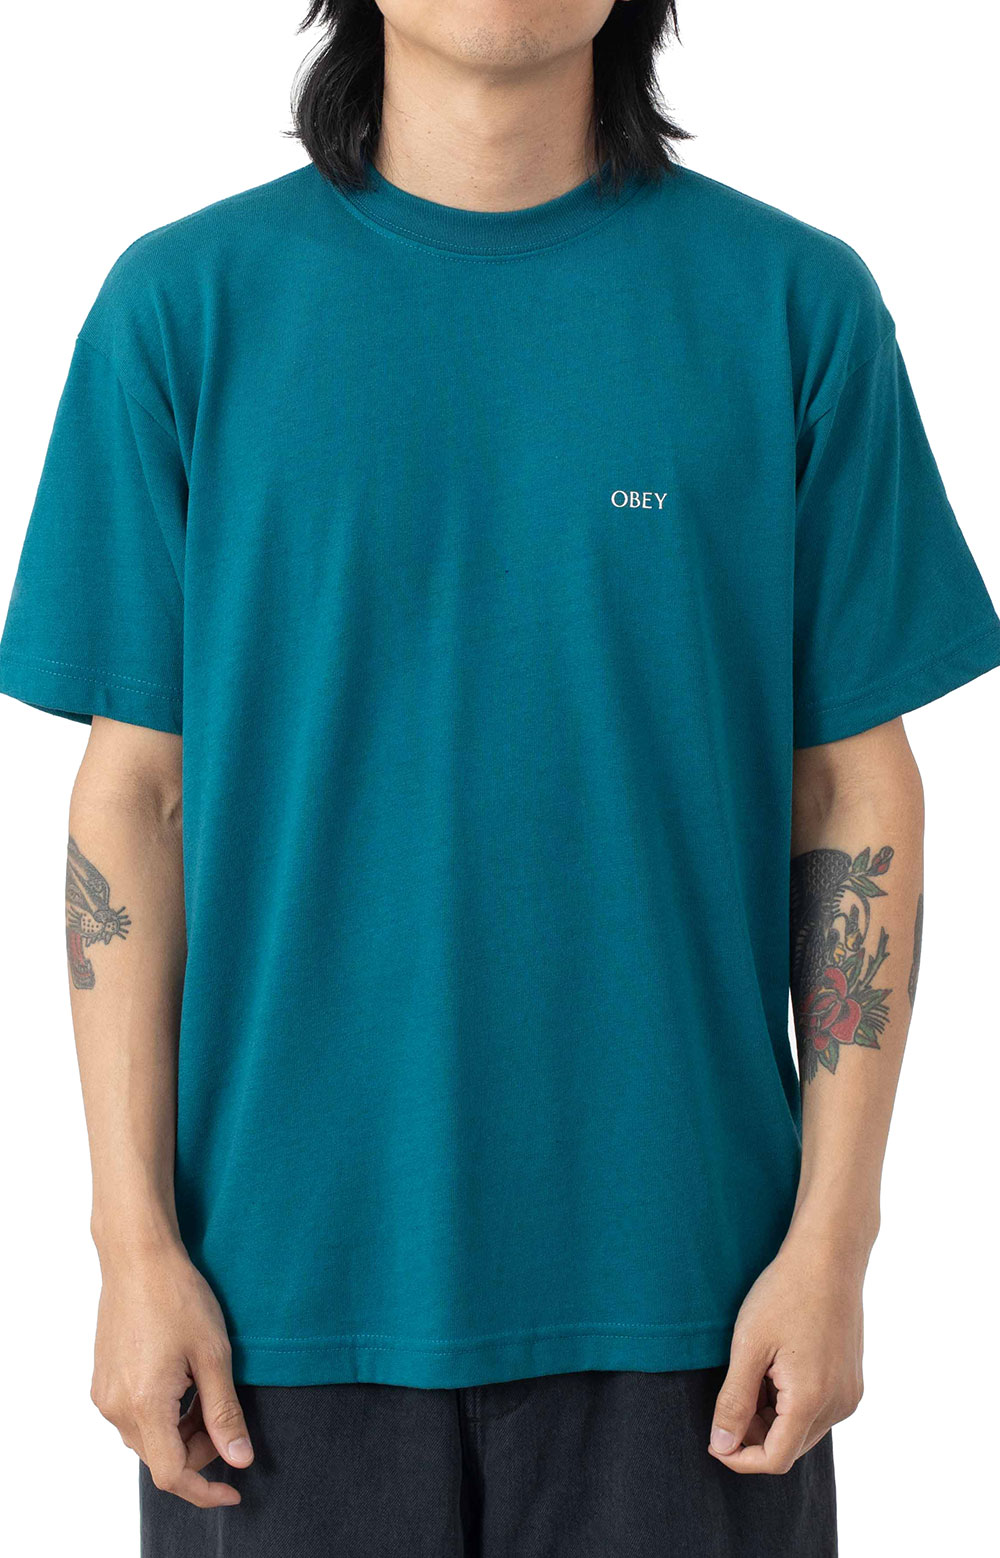 Obey Windmill T-Shirt - Shaded Spruce  2